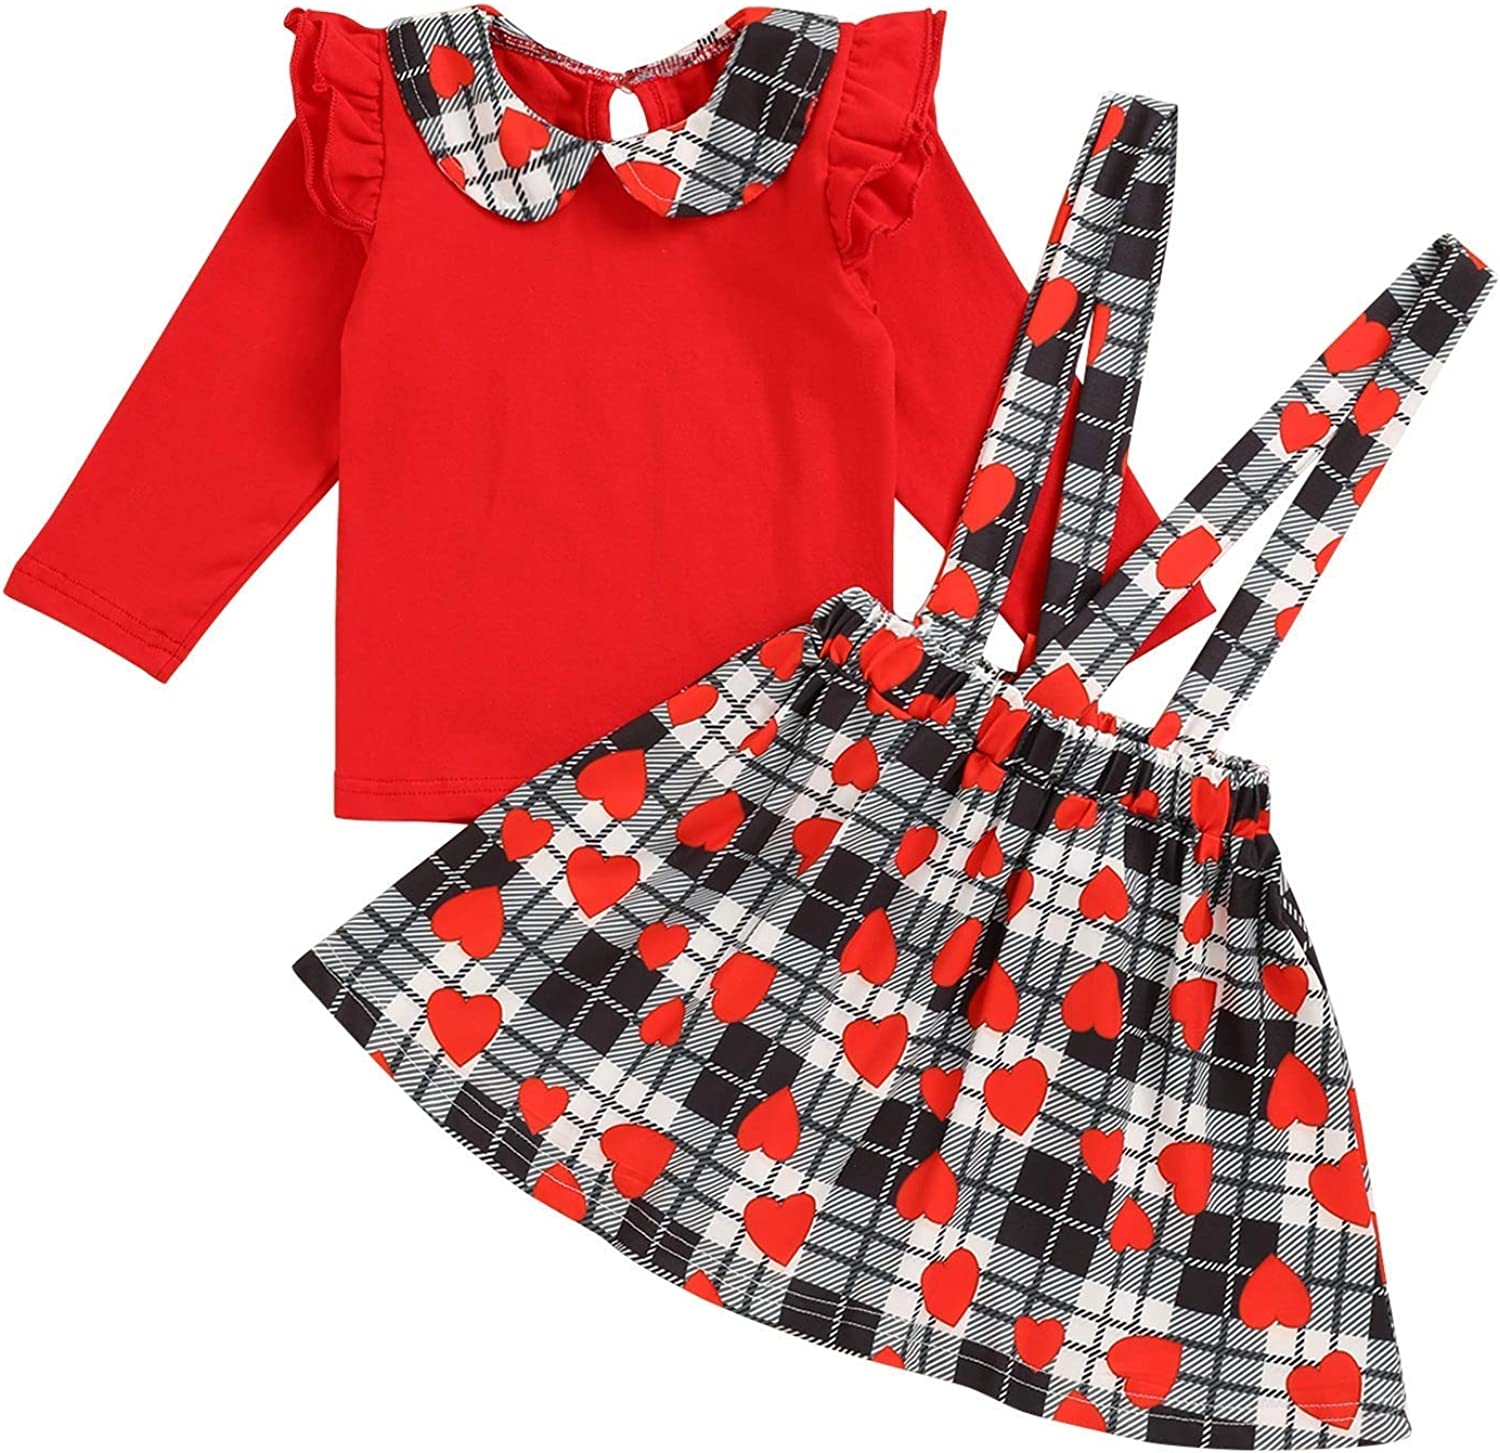 Valentine's Day Baby Girl Outfits Dress Ruffle Sleeve Tops Heart Suspender Skirt Baby Girl Clothes Set